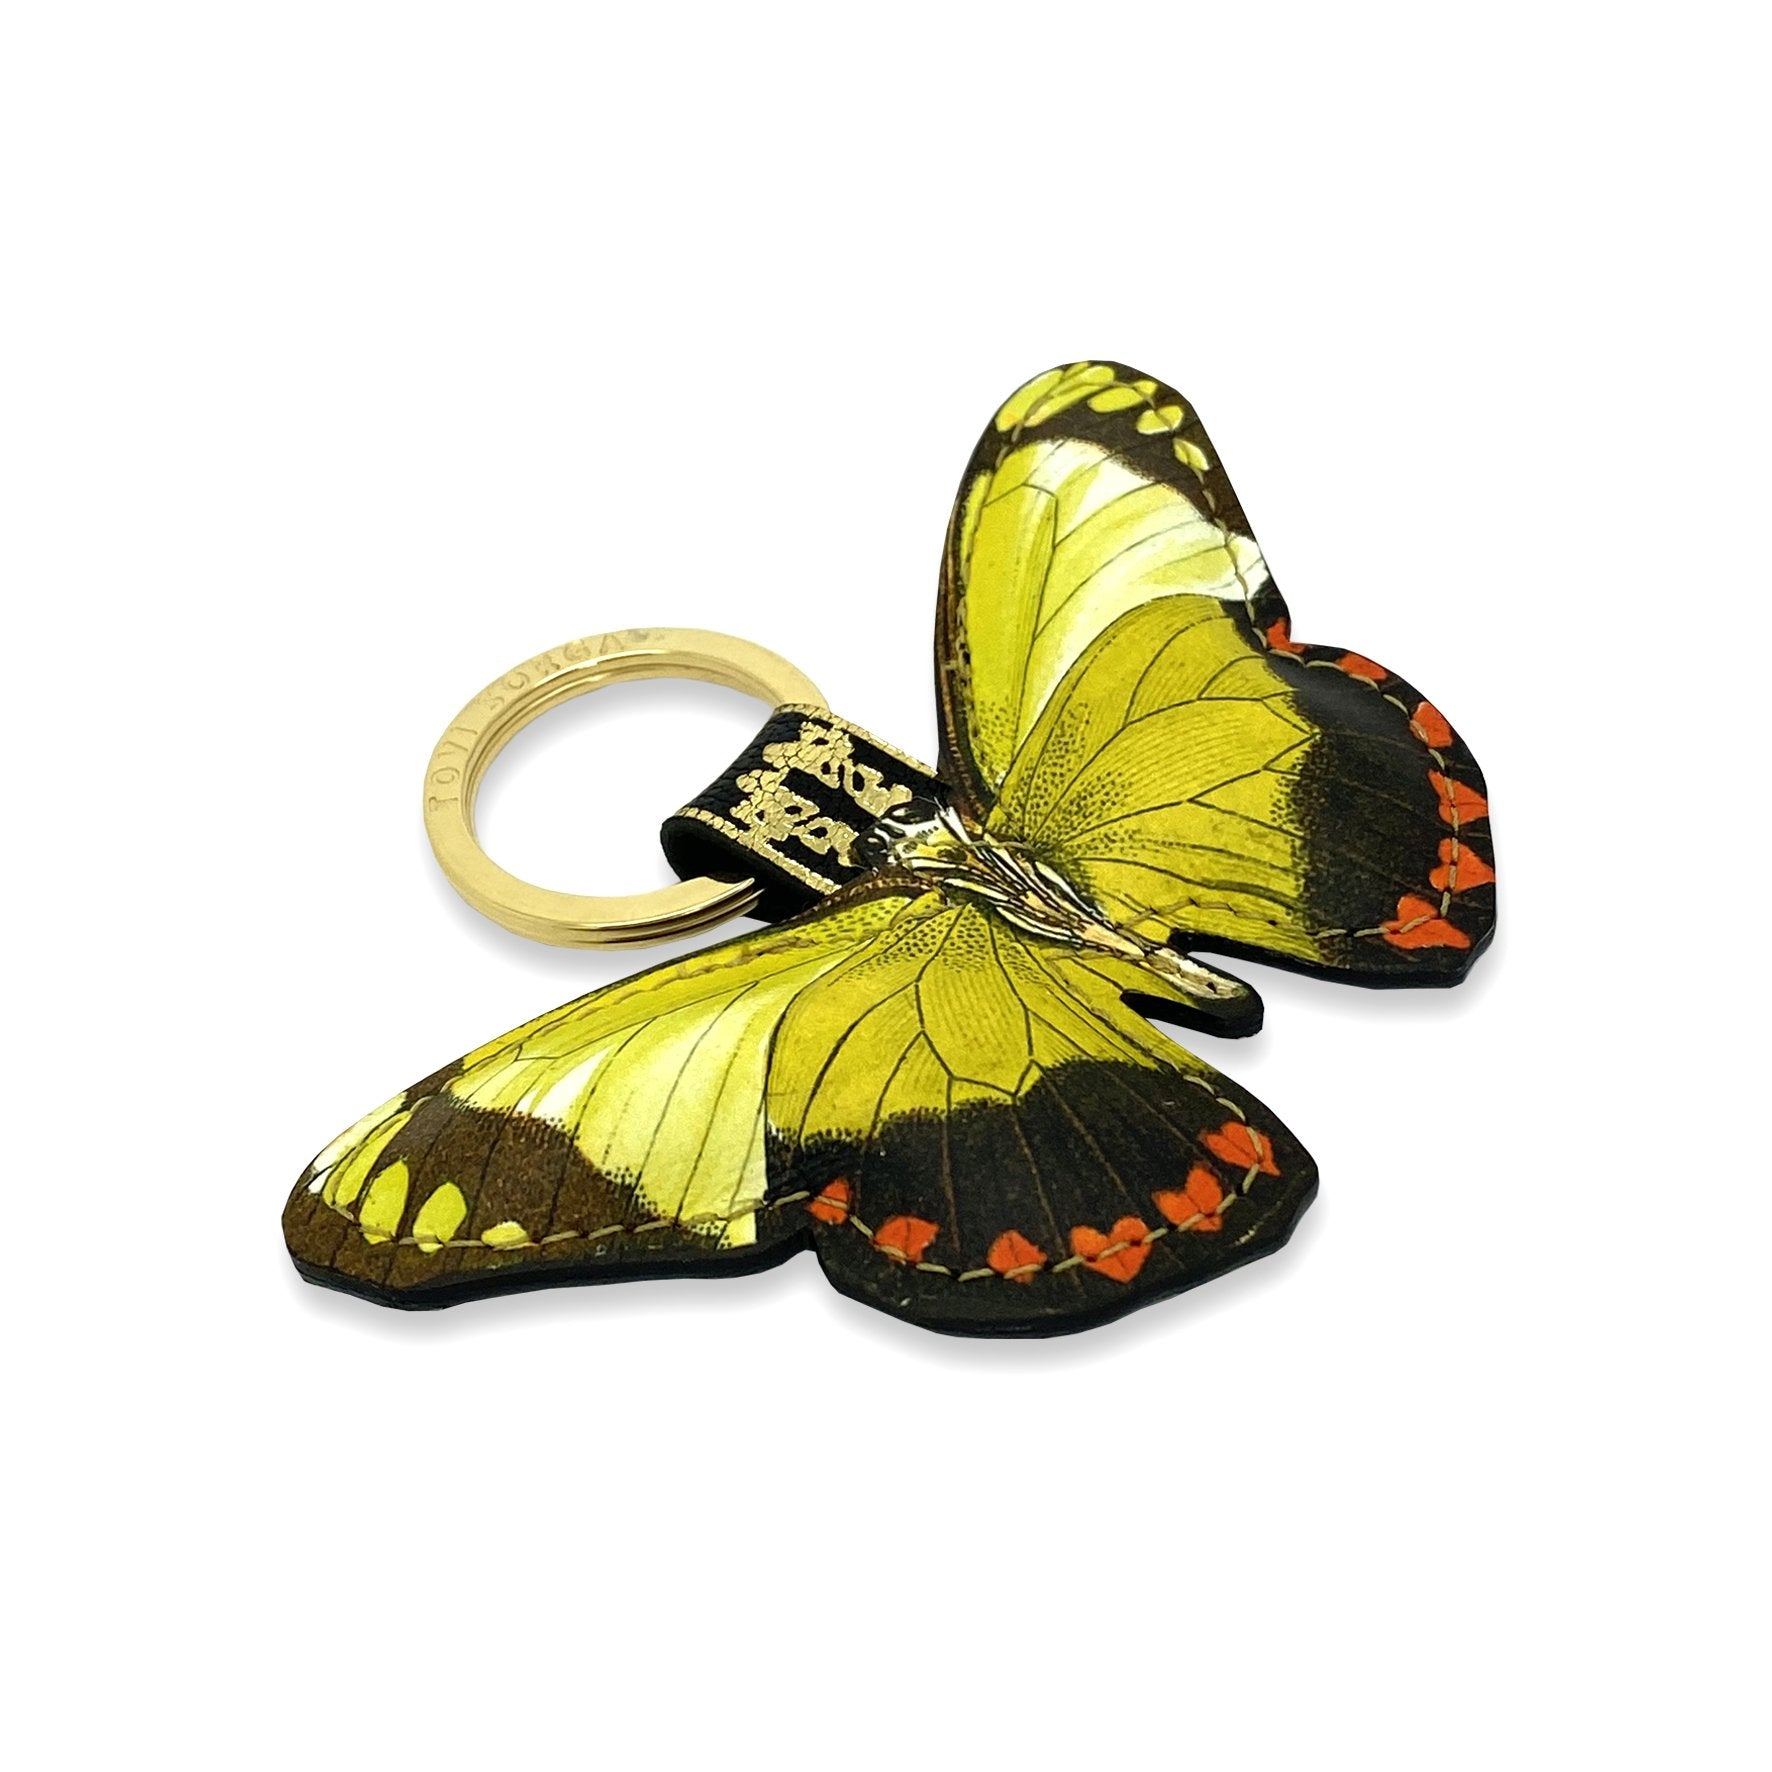 Leather Key Ring / Bag Charm - Valentine Butterfly Key Ring / Bag Charm Tovi Sorga